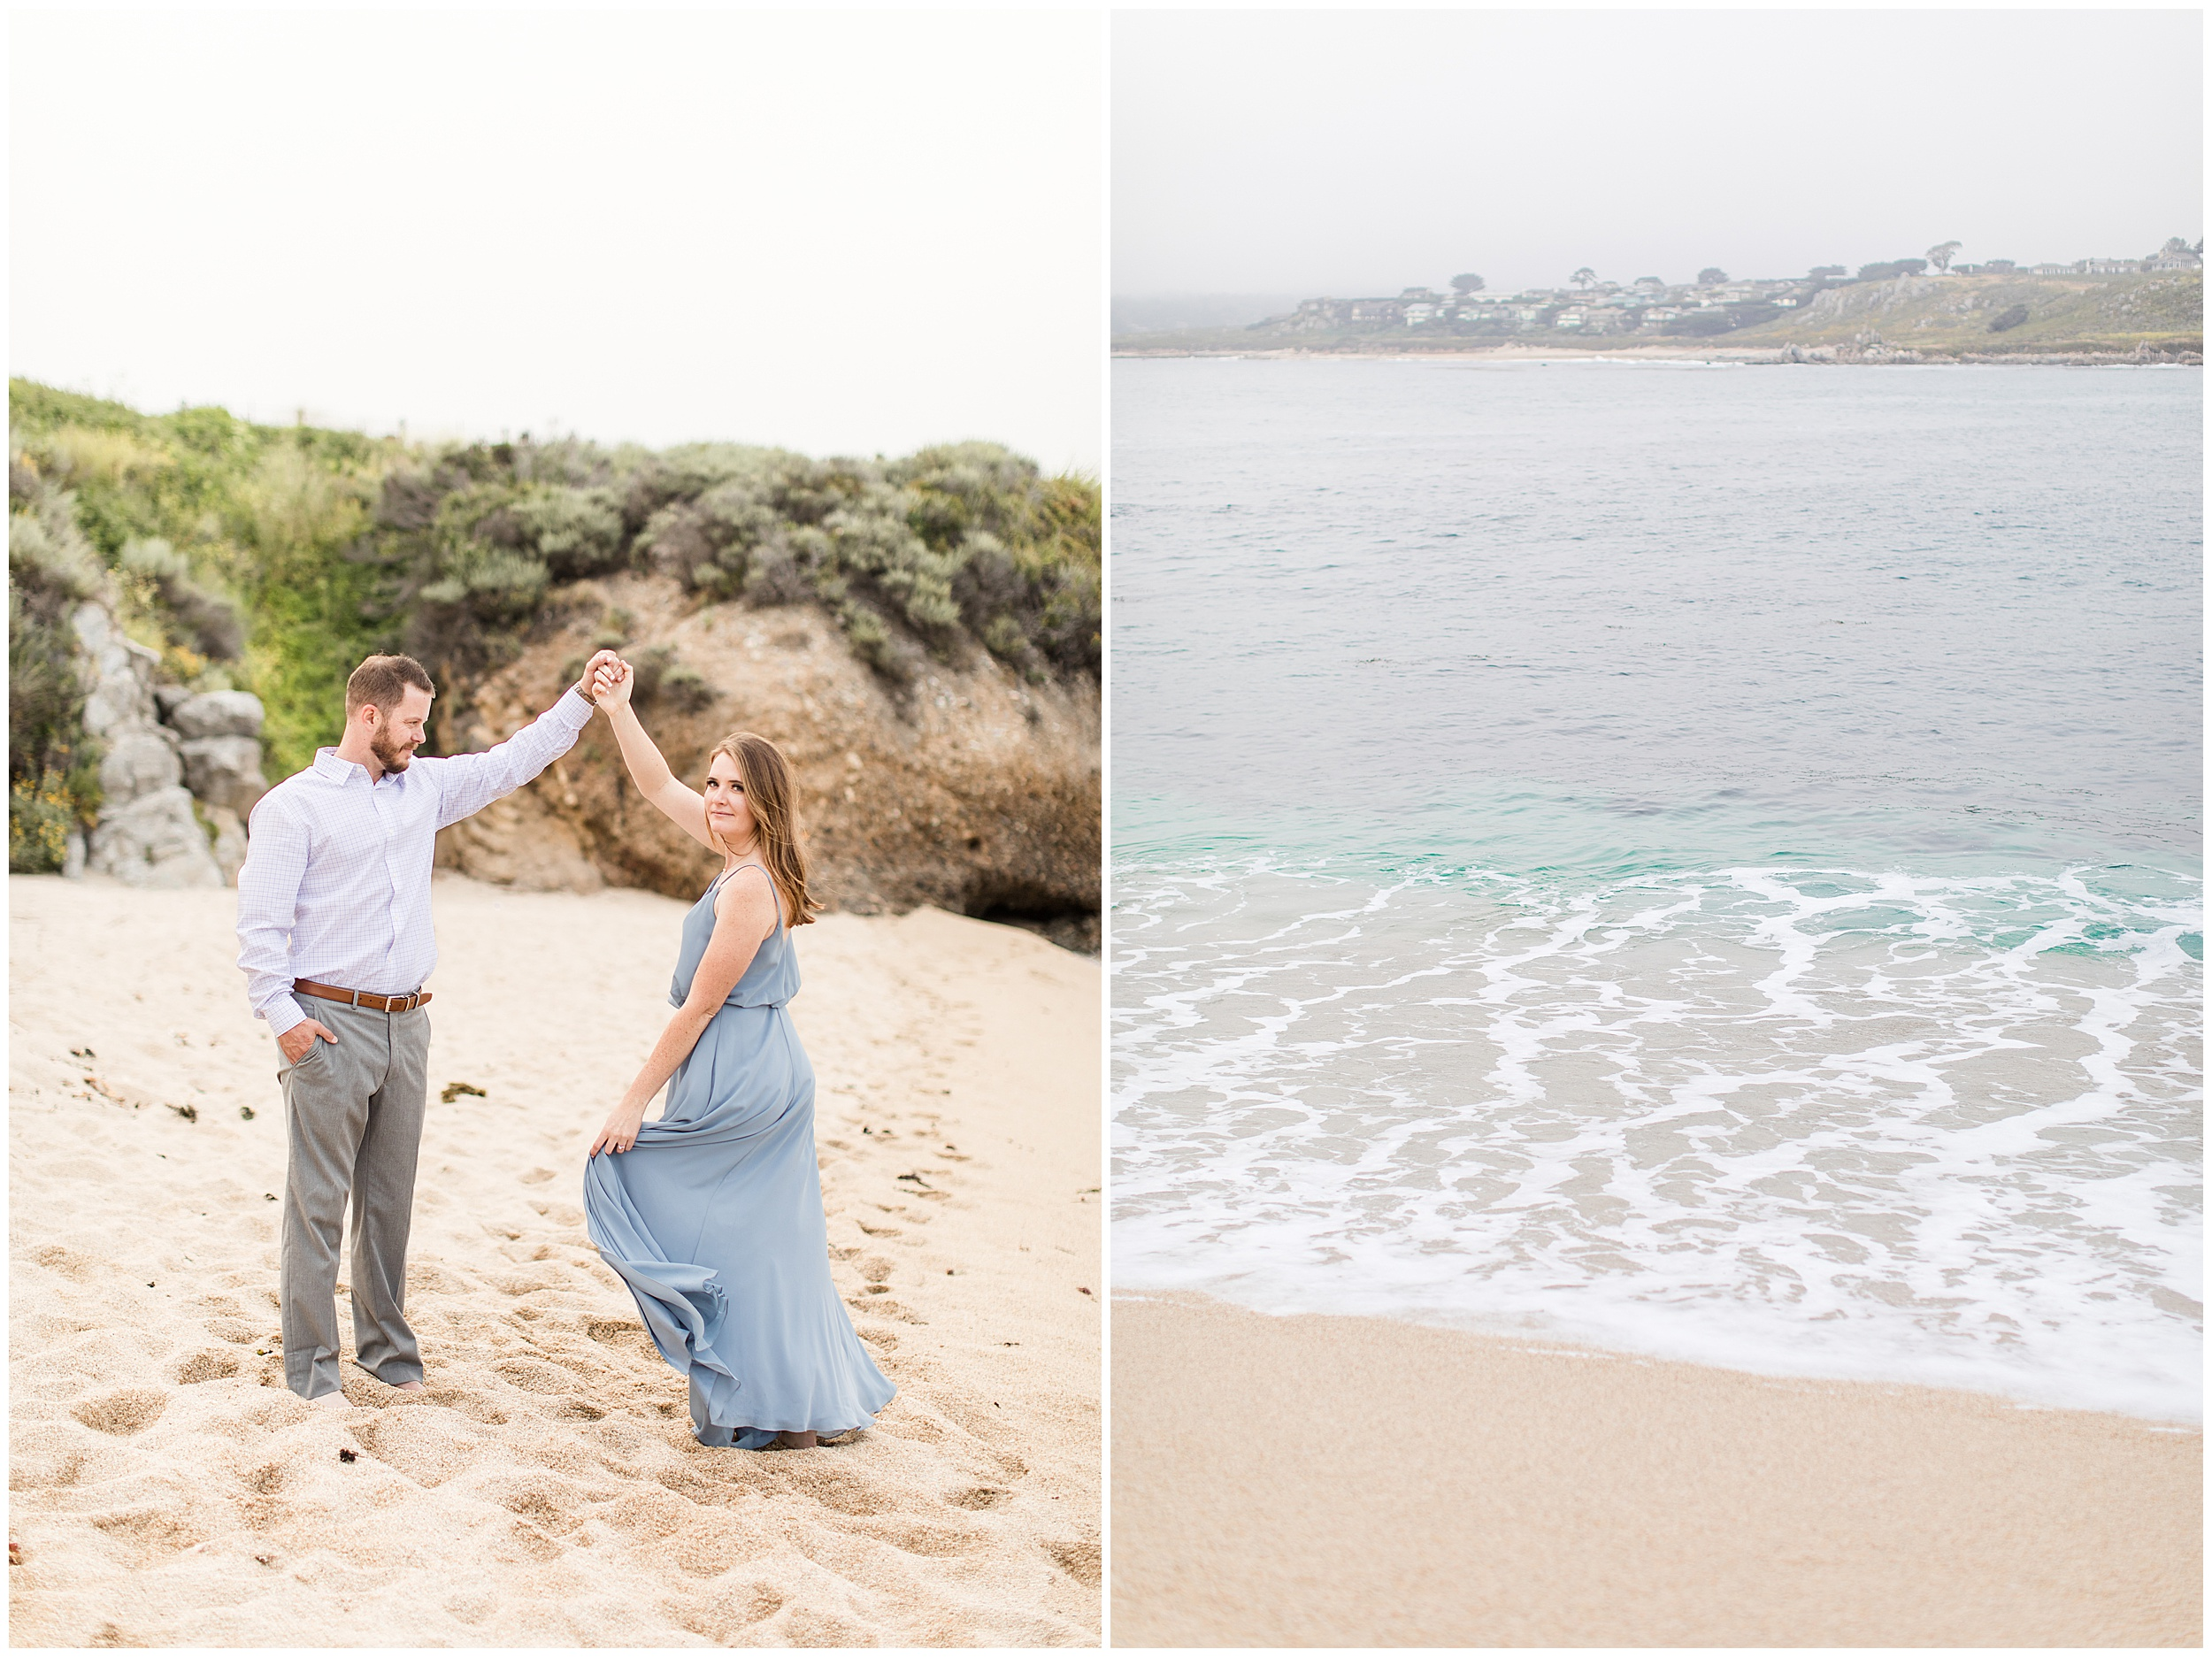 2019 carmel by the sea surprise proposal engagement session wedding photographer angela sue photography_0033.jpg